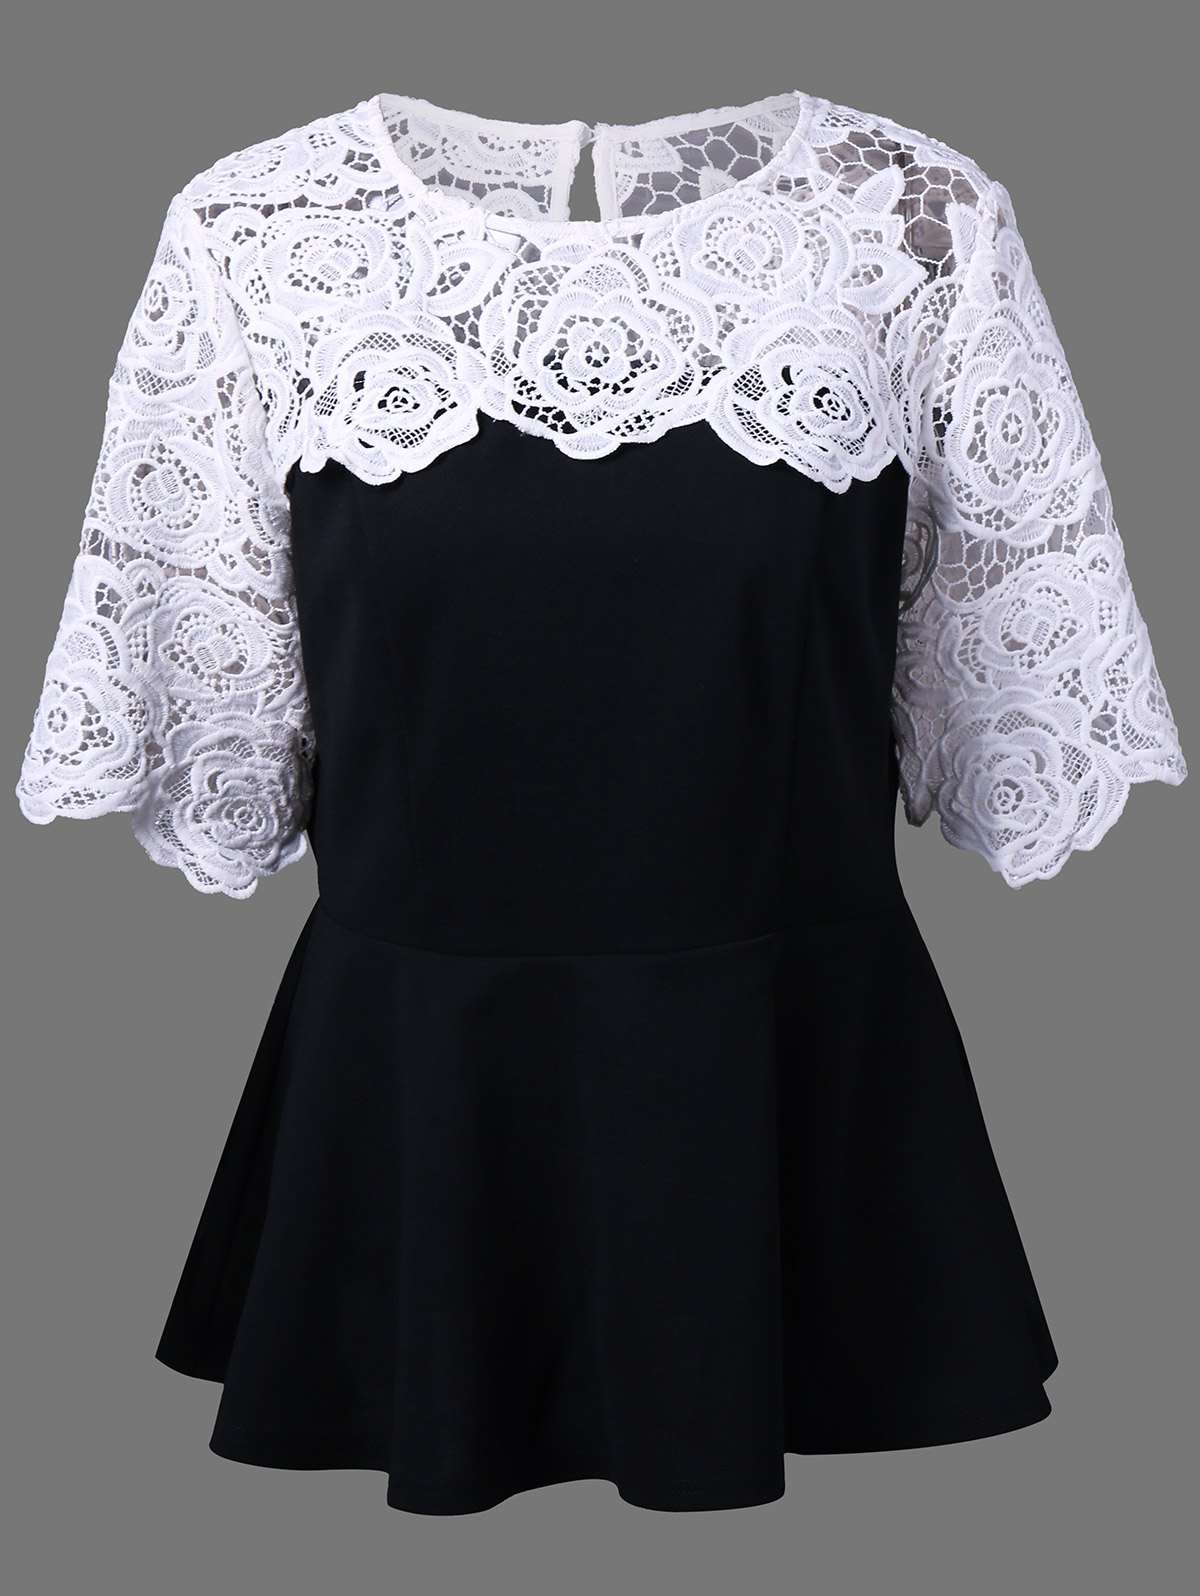 Plus Size Lace Insert Peplum Top - WHITE/BLACK 2XL